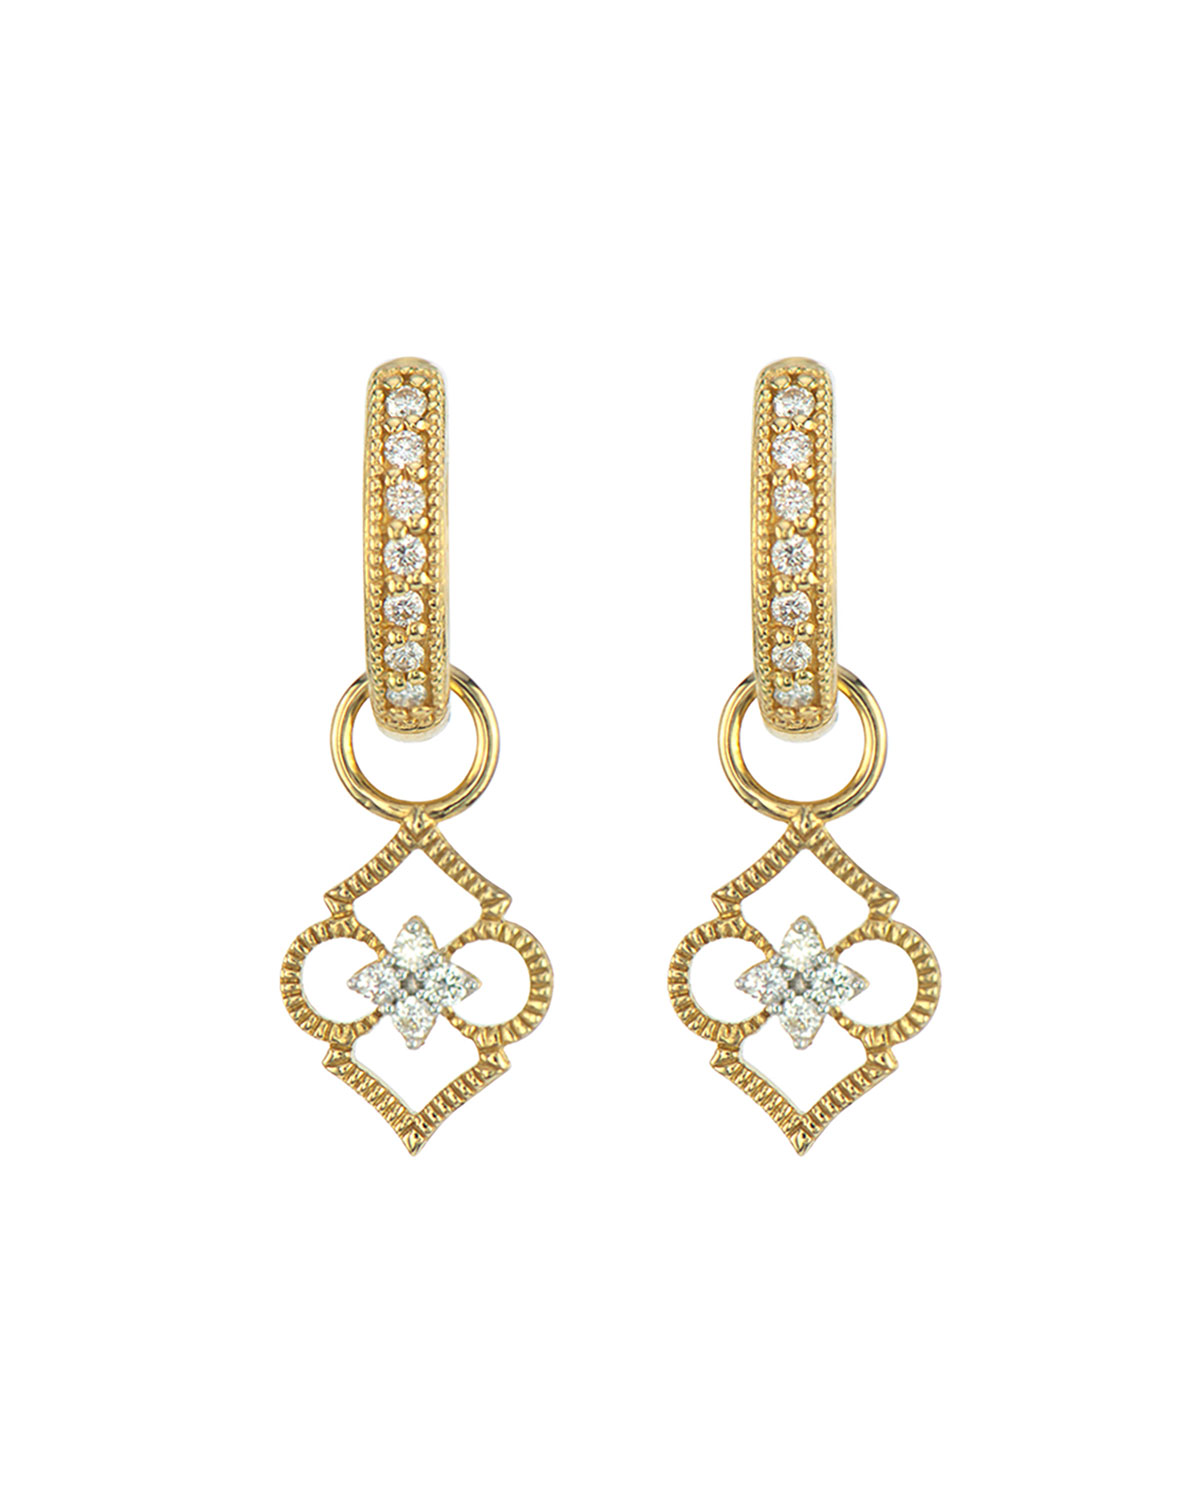 Moroccan Open Air Clover Earring Charms